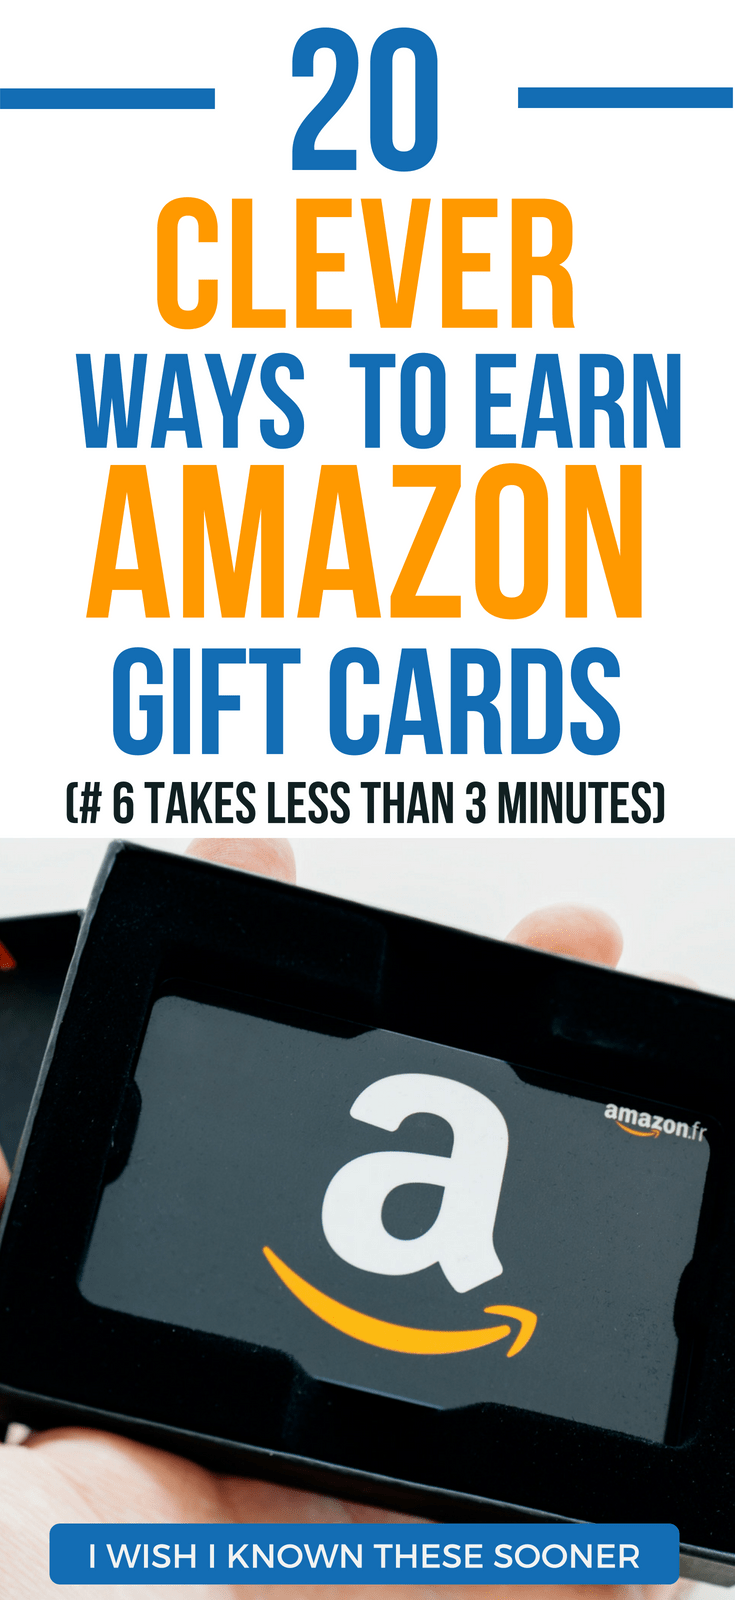 The 20 Best Ways To Earn Free Amazon Gift Cards in 2018 amazon gift card free | save money on amazon tips | free gift cards how to get | referral program | amazon hacks free stuff #thewaystowealth #amazon #giftcards